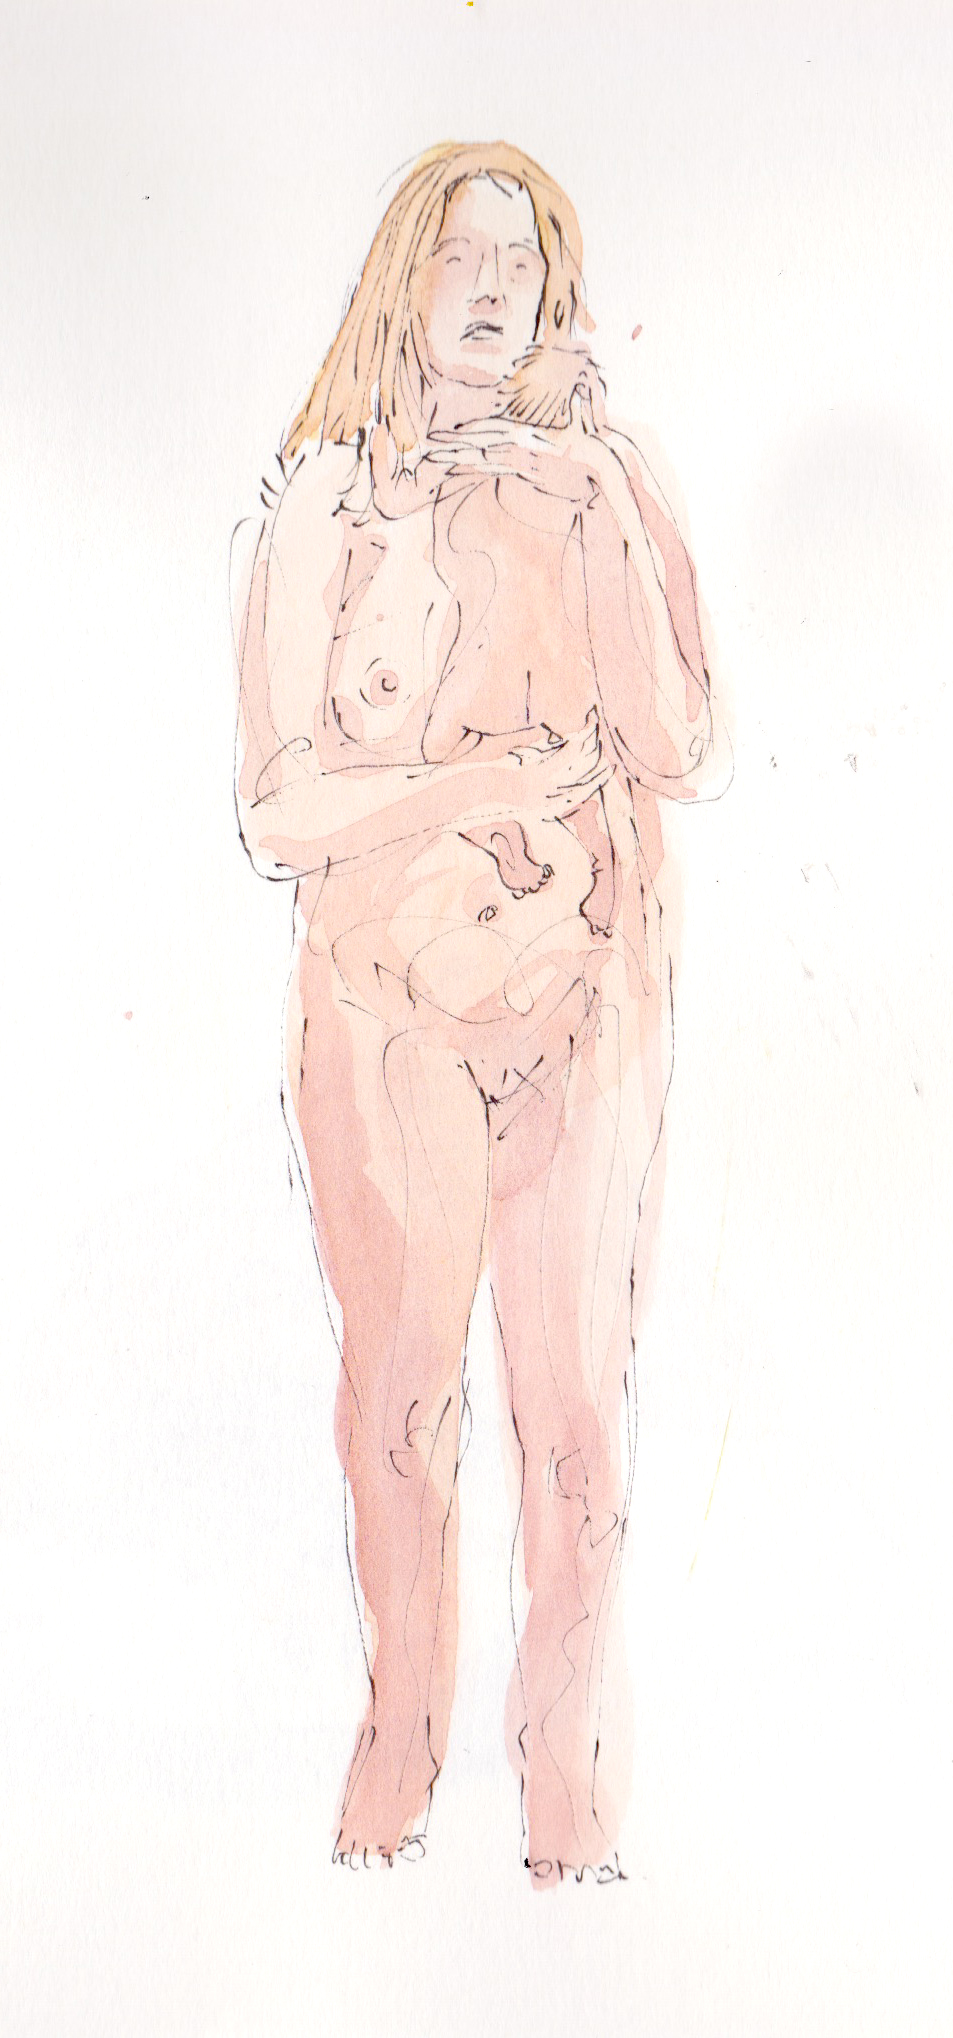 lifedrawing 08